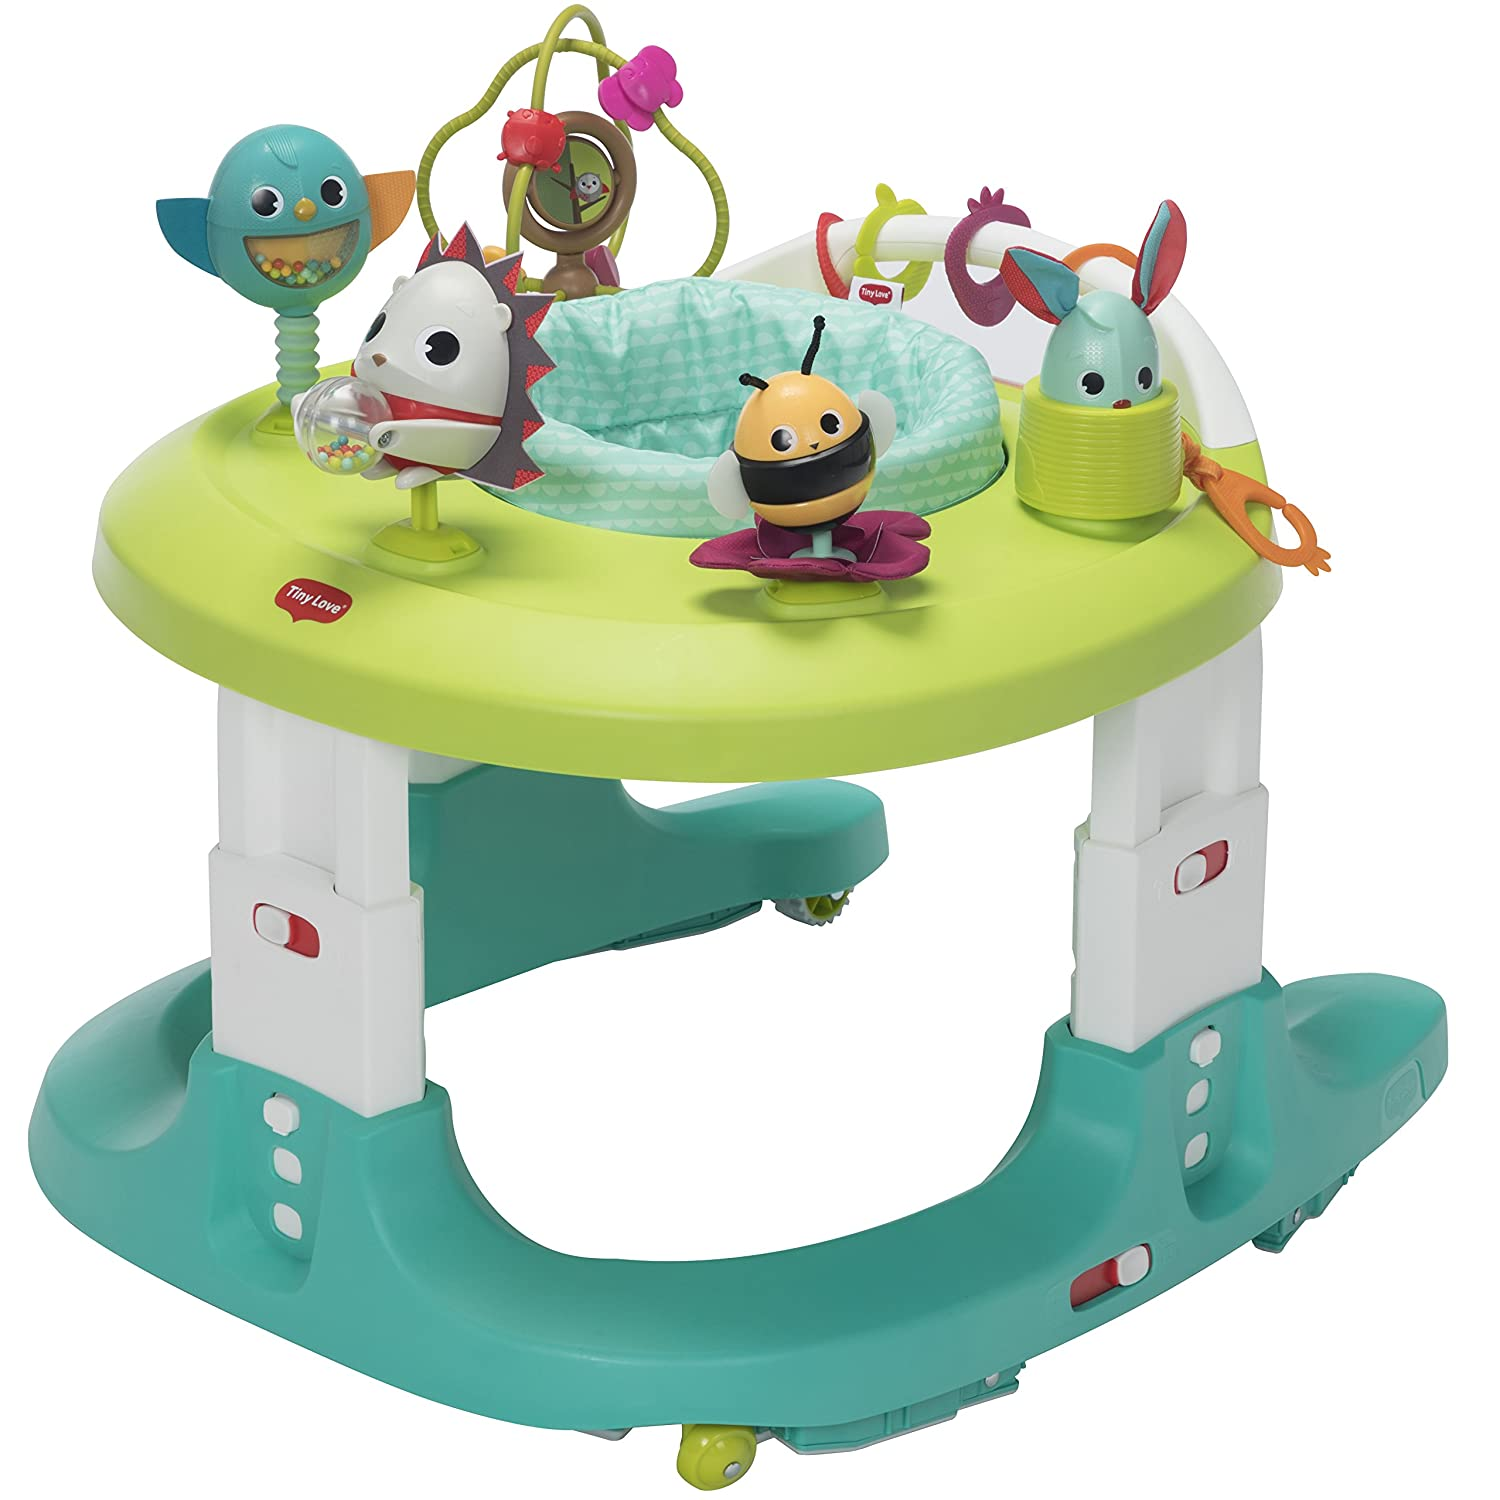 Tiny Love Meadow 4-in-1 Walker